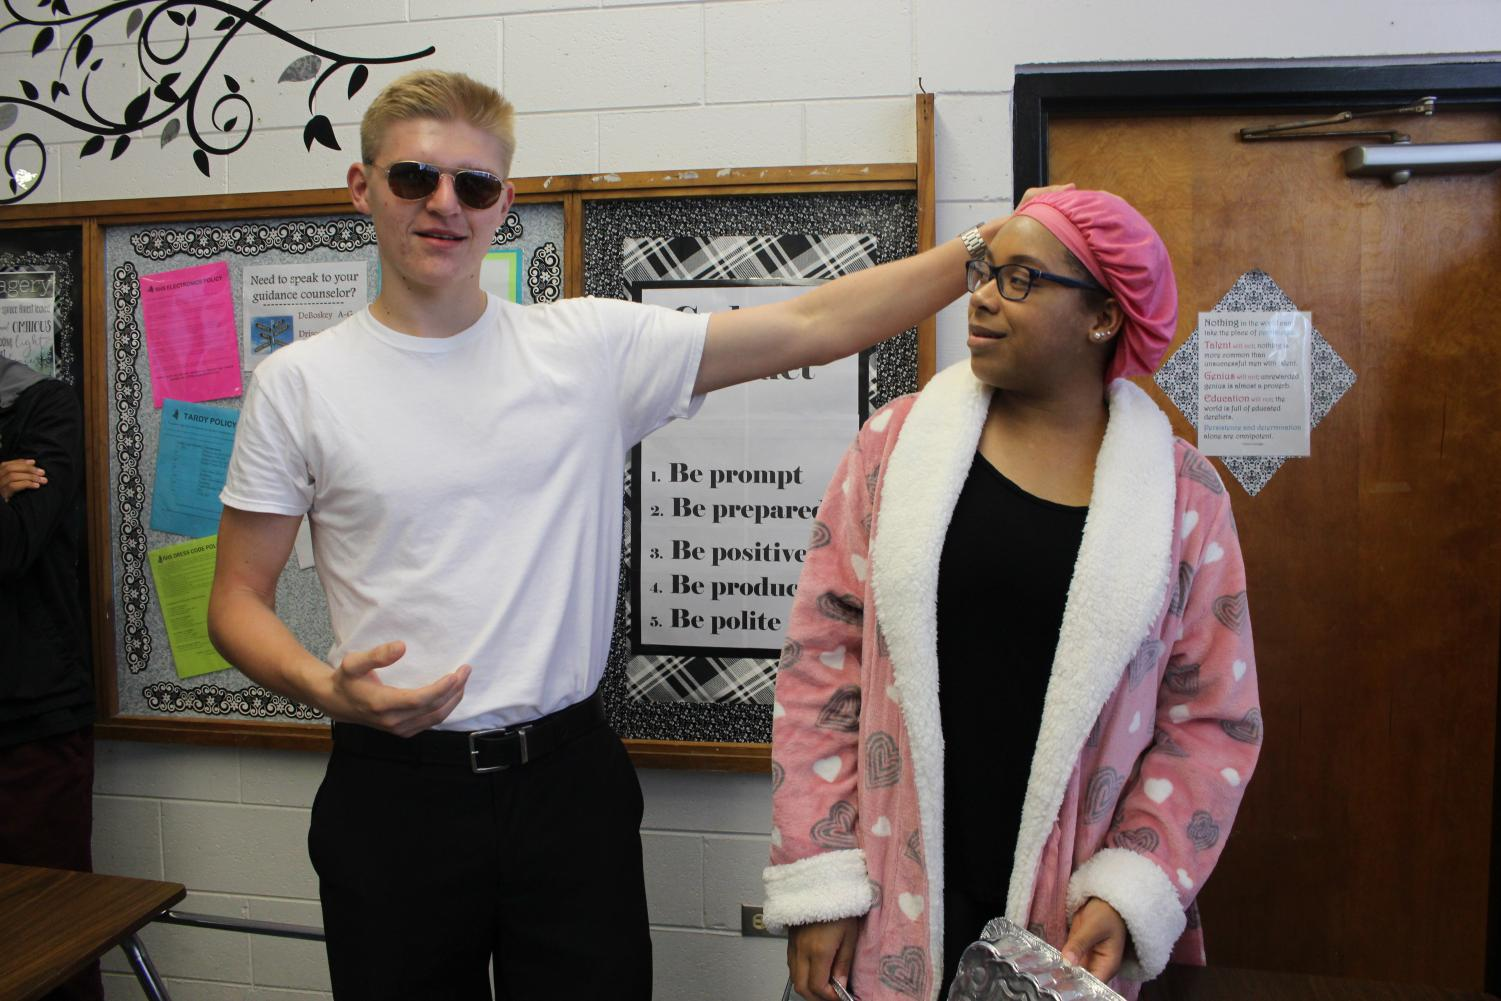 Nicholas Rogers ('20) and Shayla Estelle ('20) pose as their meme day characters.